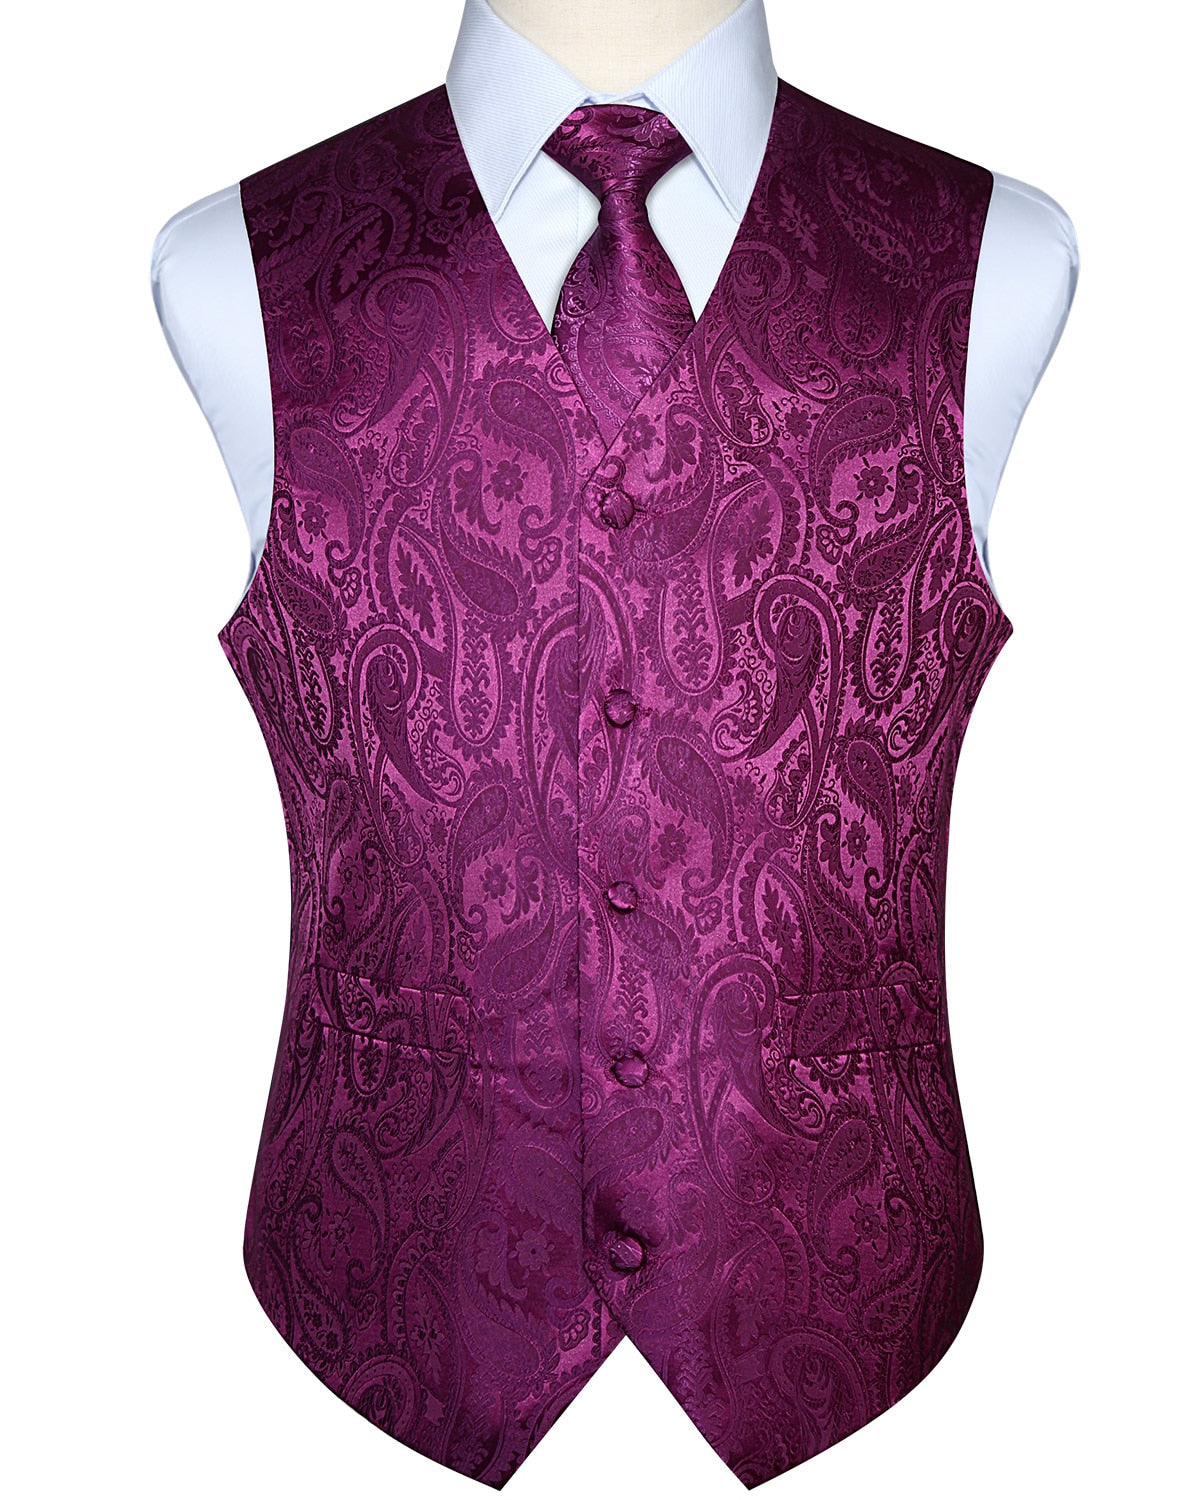 Men Waistcoat Vest Party Wedding Handkerchief Necktie Classic Paisley Plaid Floral Jacquard Pocket Square Tie Suit Set